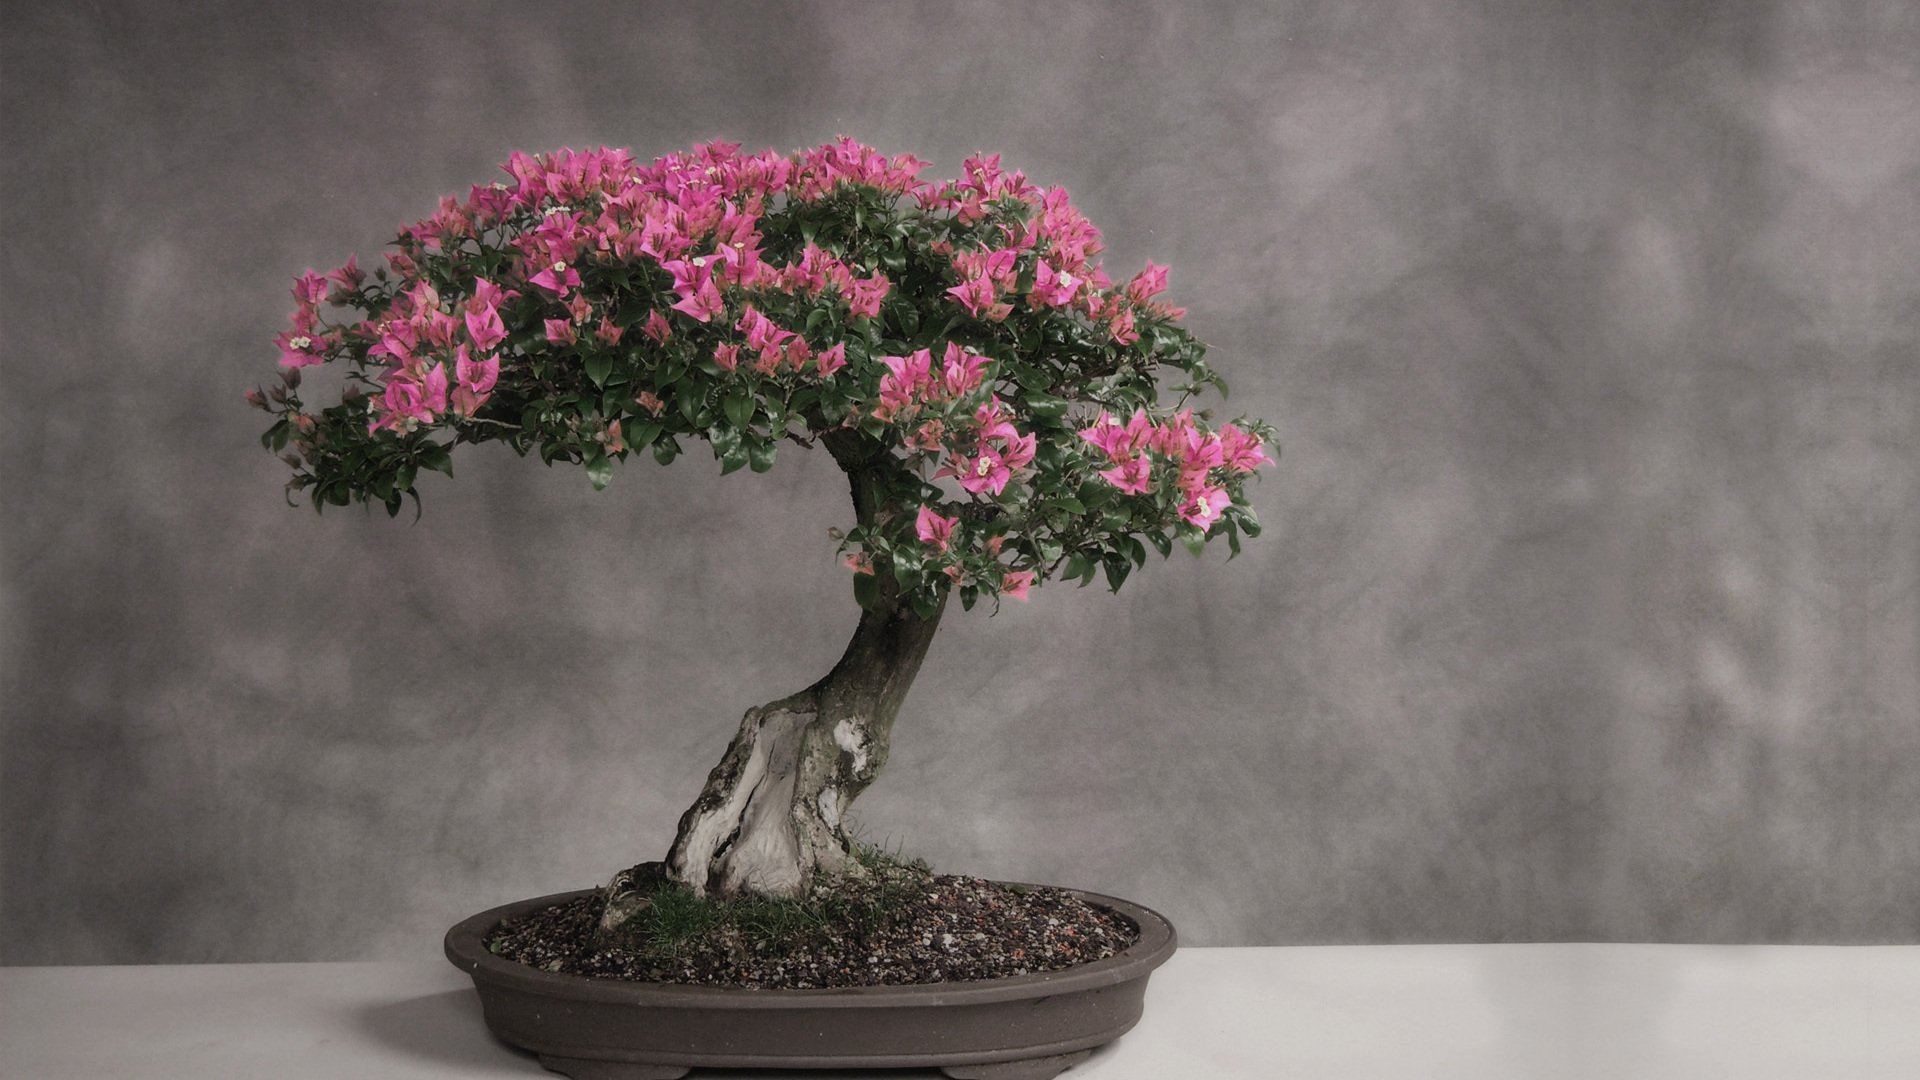 Bonsai Aarde Bonsai Hd Wallpaper Achtergrond 1920x1080 Id 427521